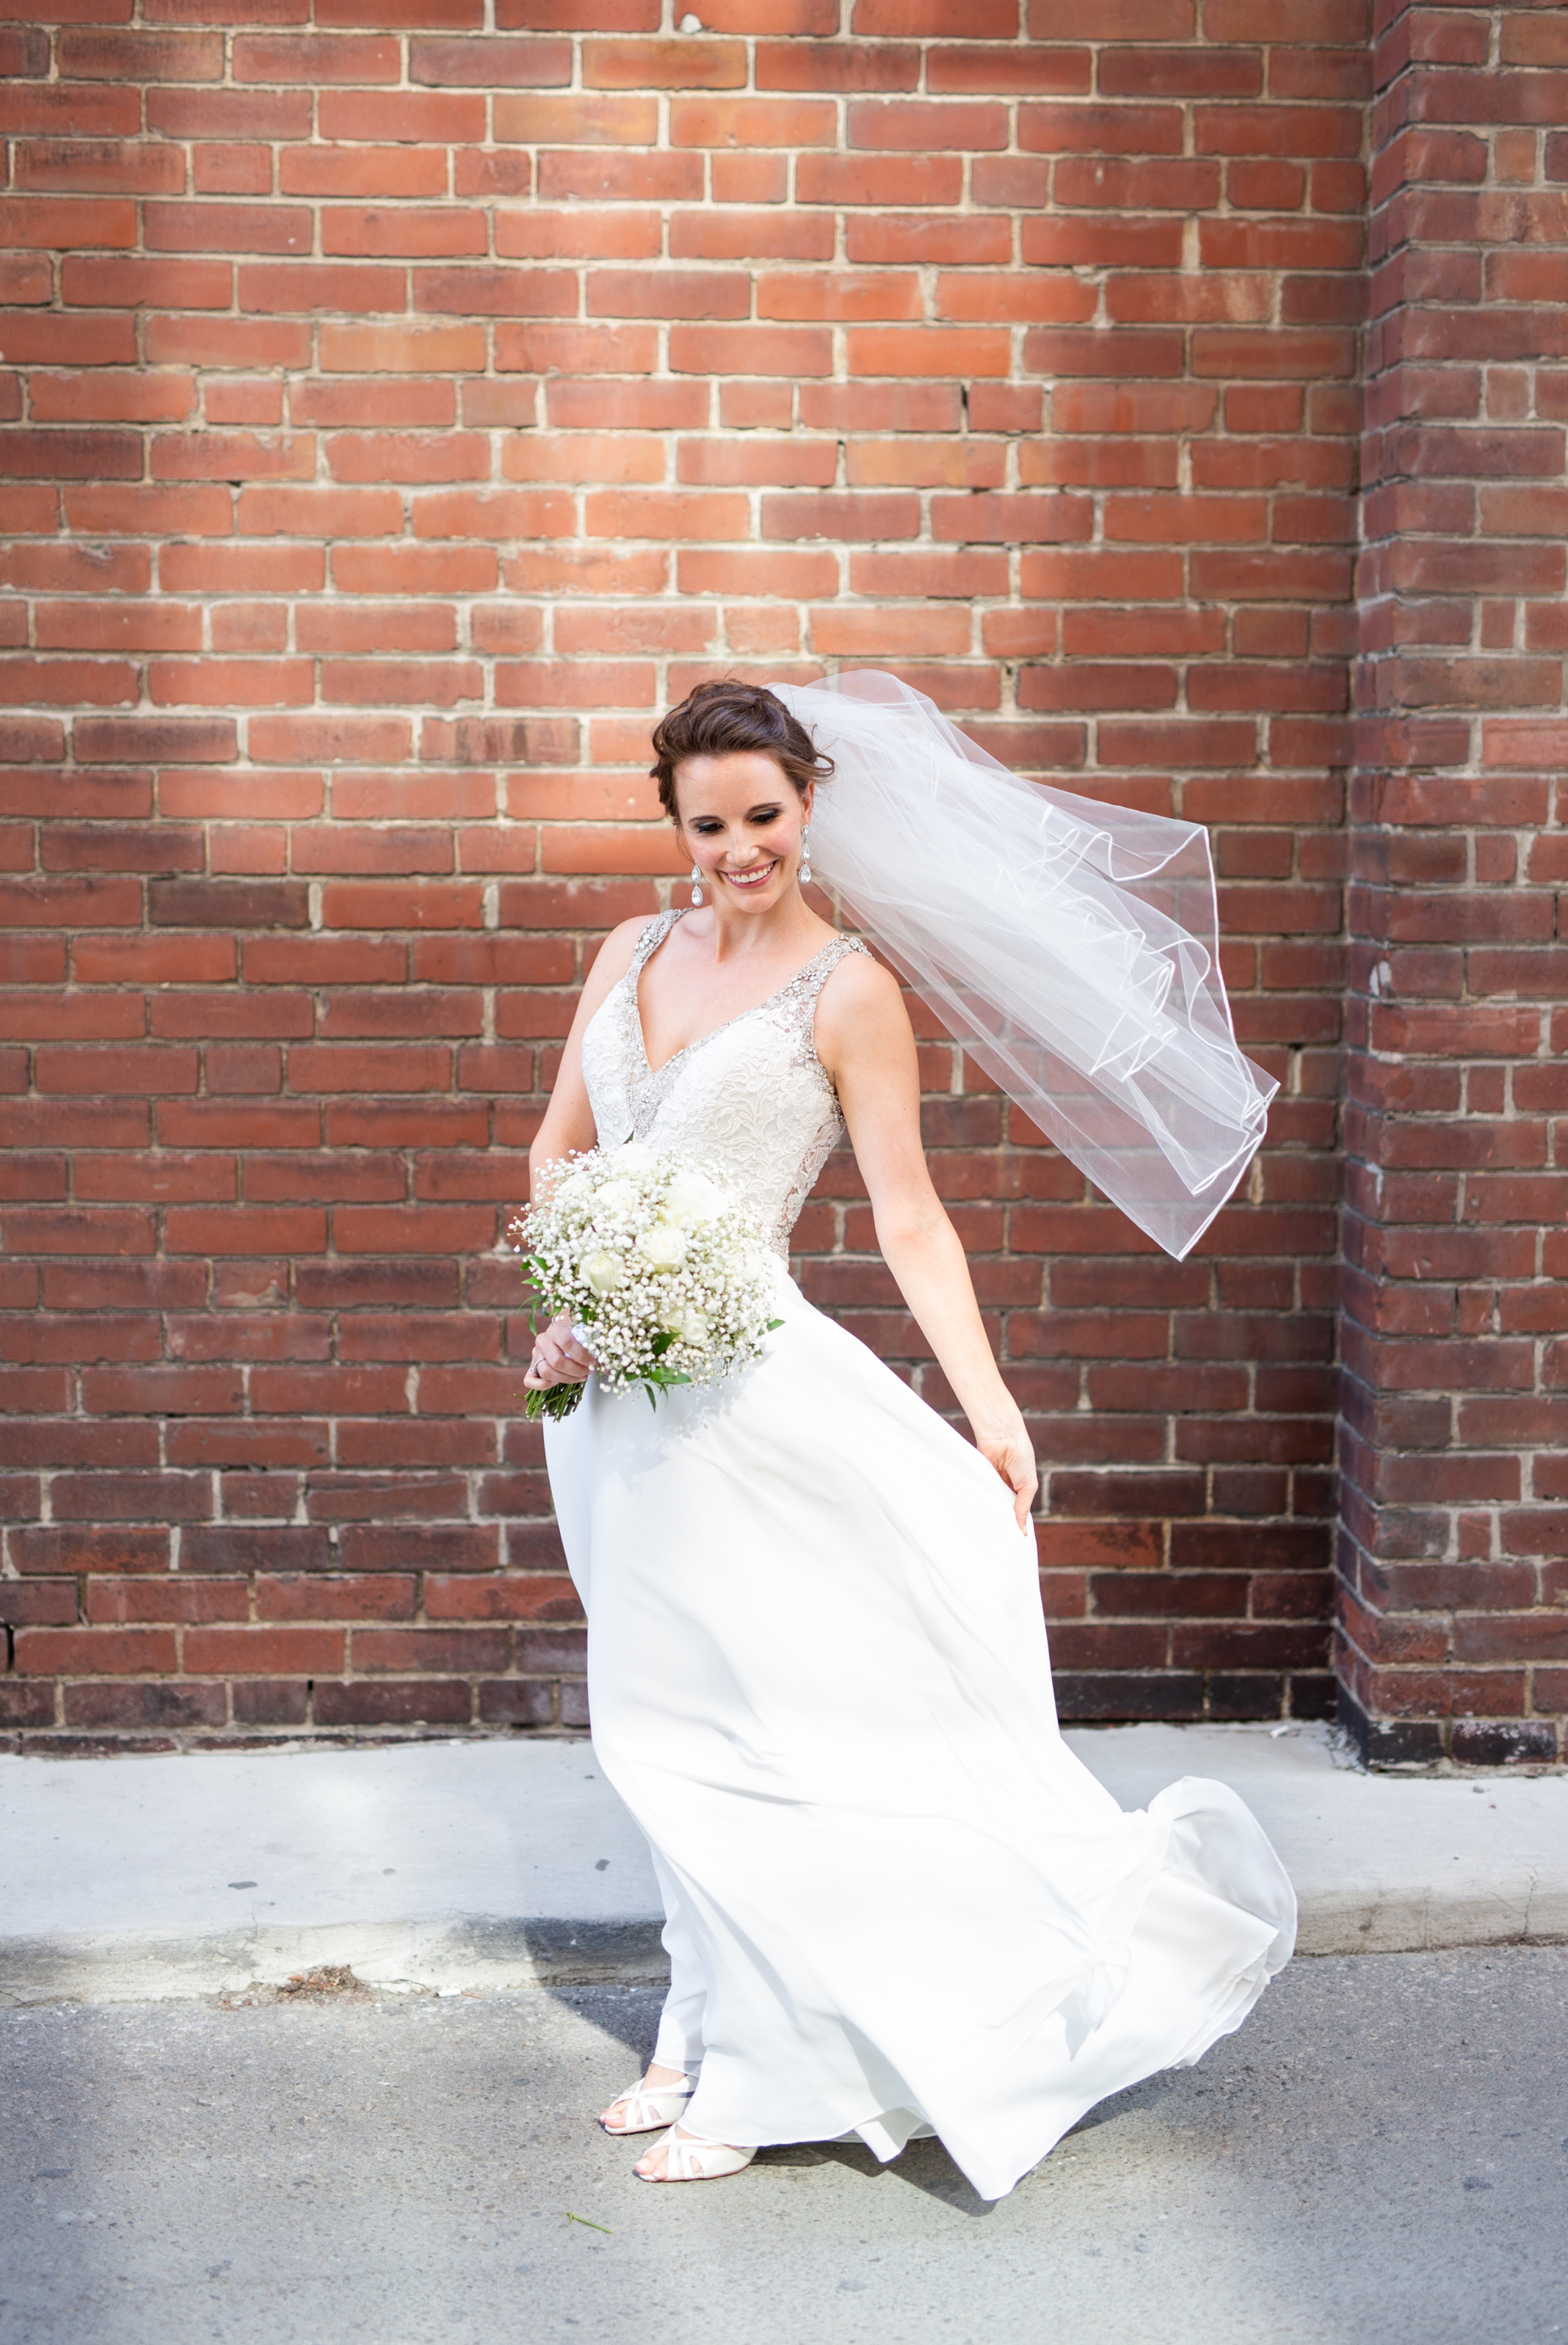 Downtown Brick Wall Toronto Wedding 2nd Floor Events Zsuzsi Pal Photography